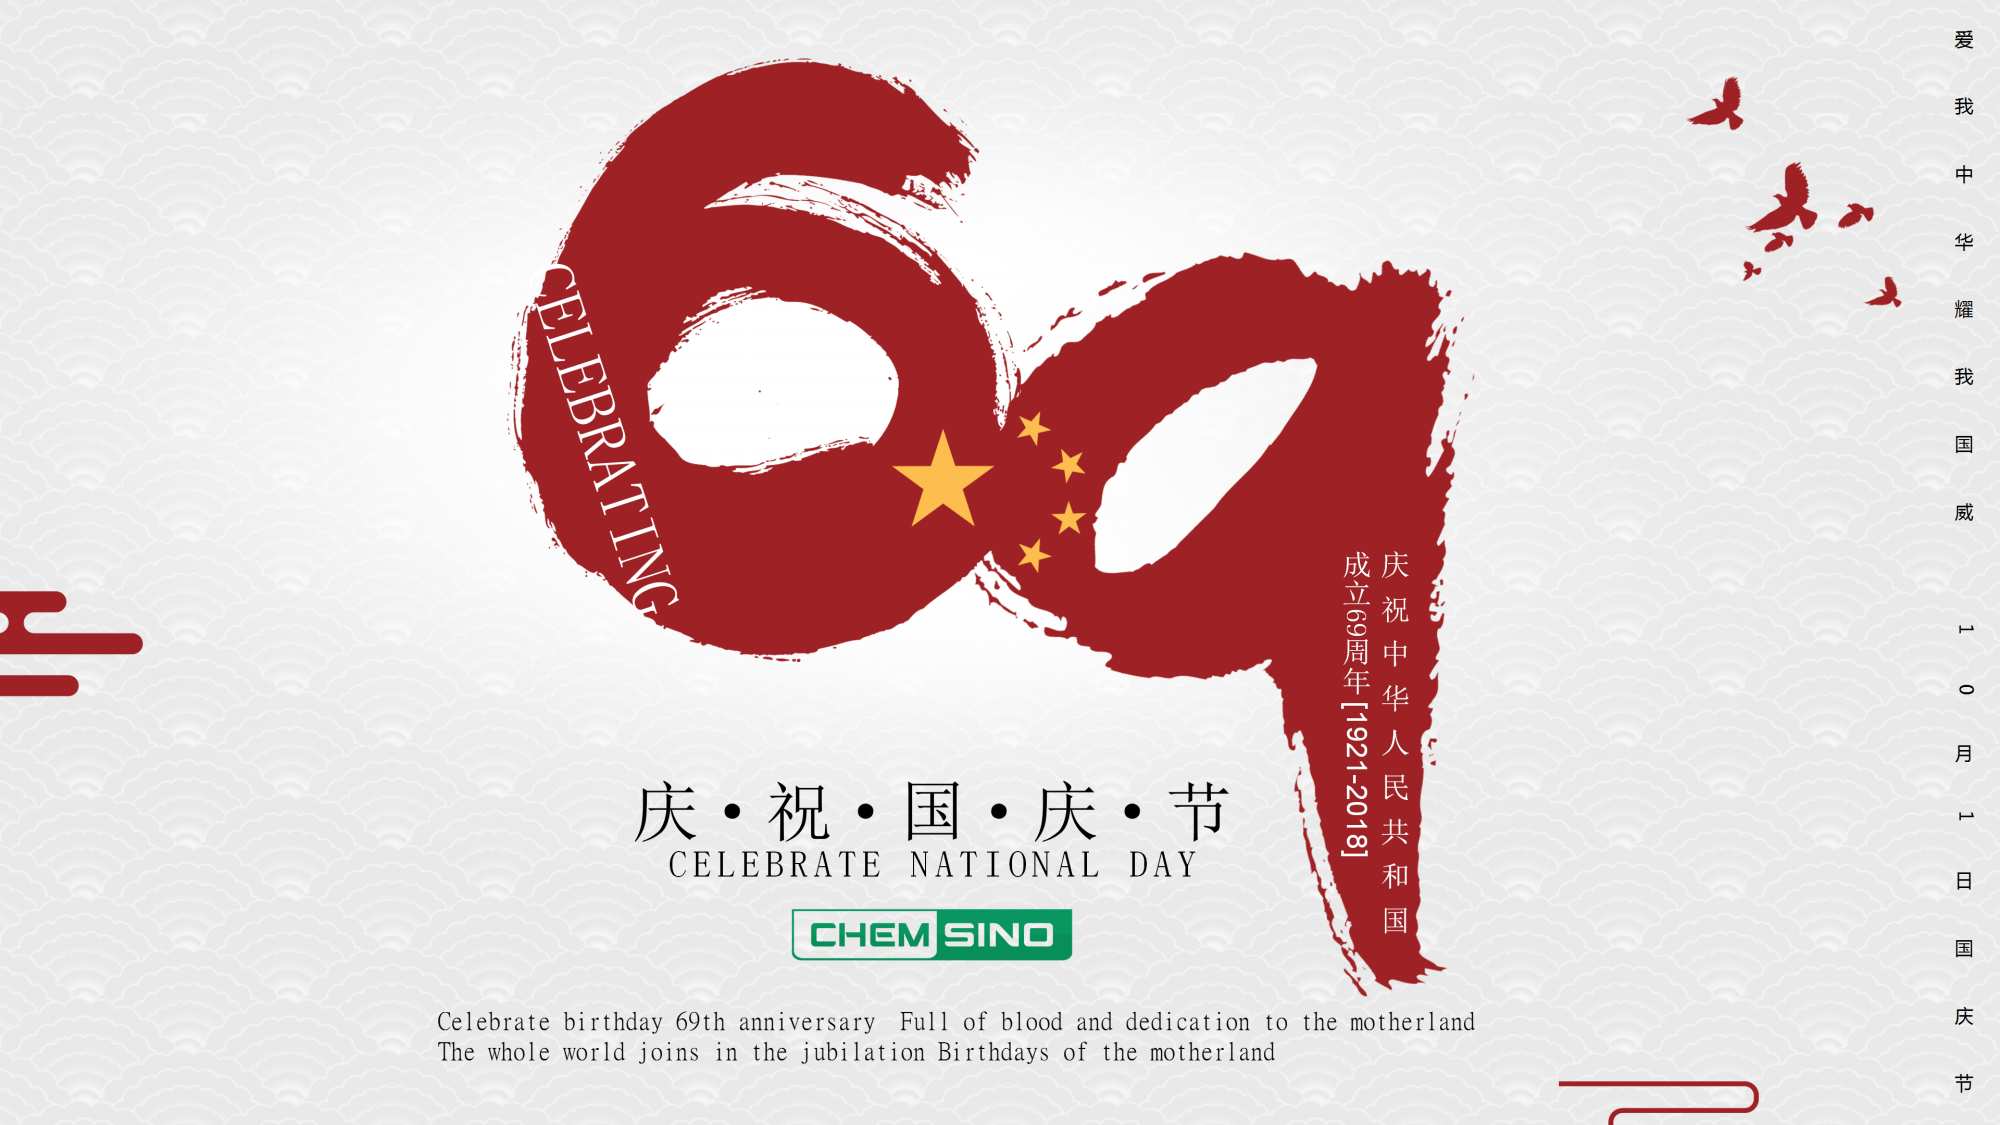 Celebrating Chinese National Day